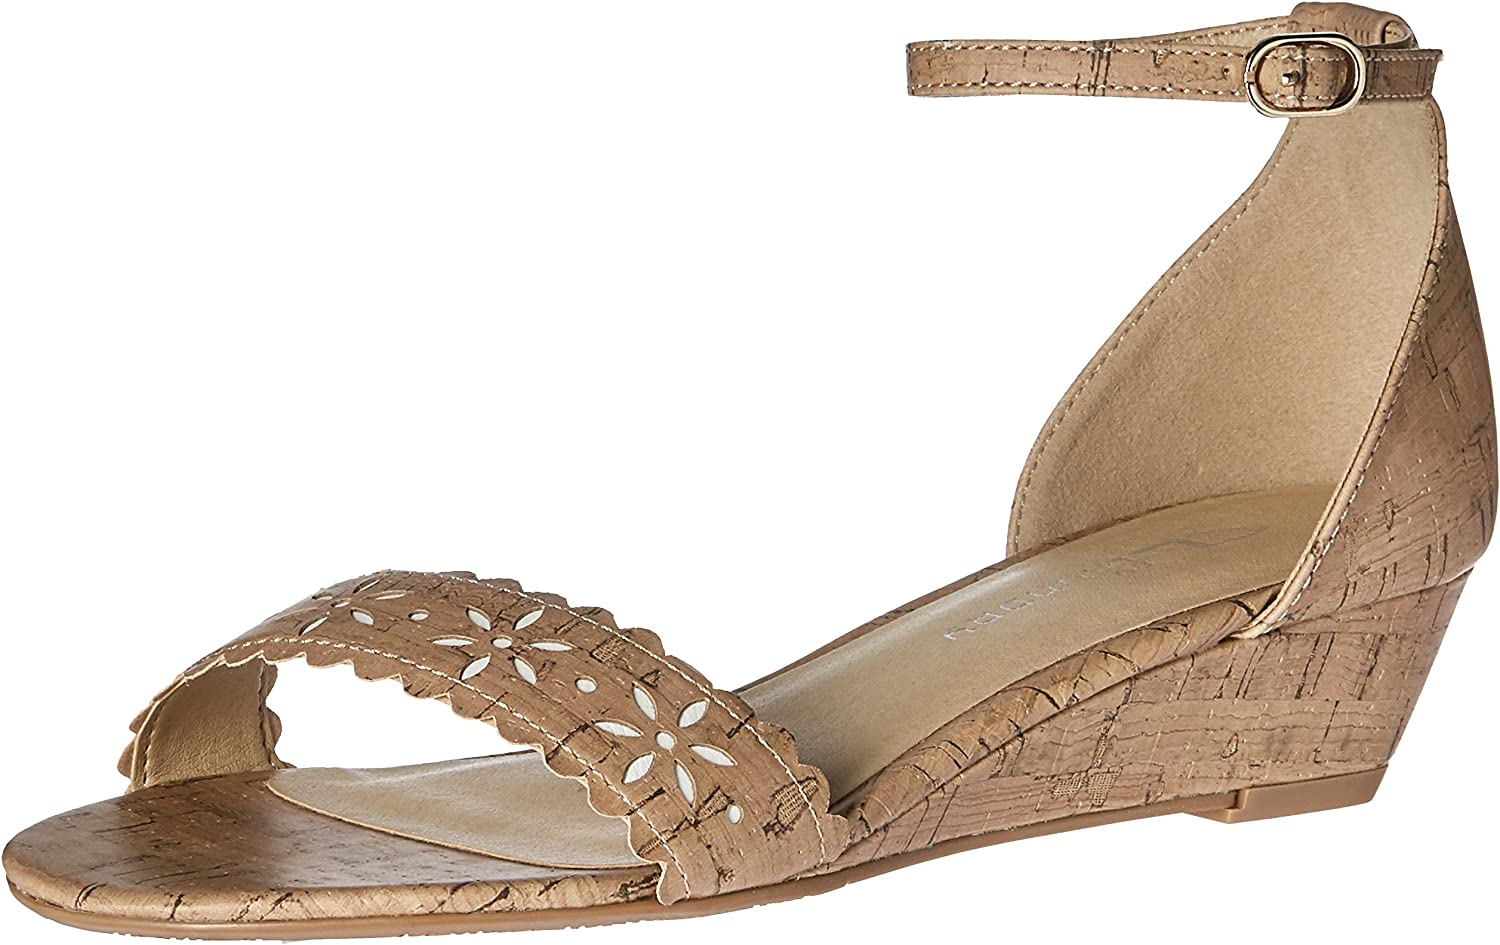 CL by Chinese Laundry Women's Mila Wedge Pump Sandal